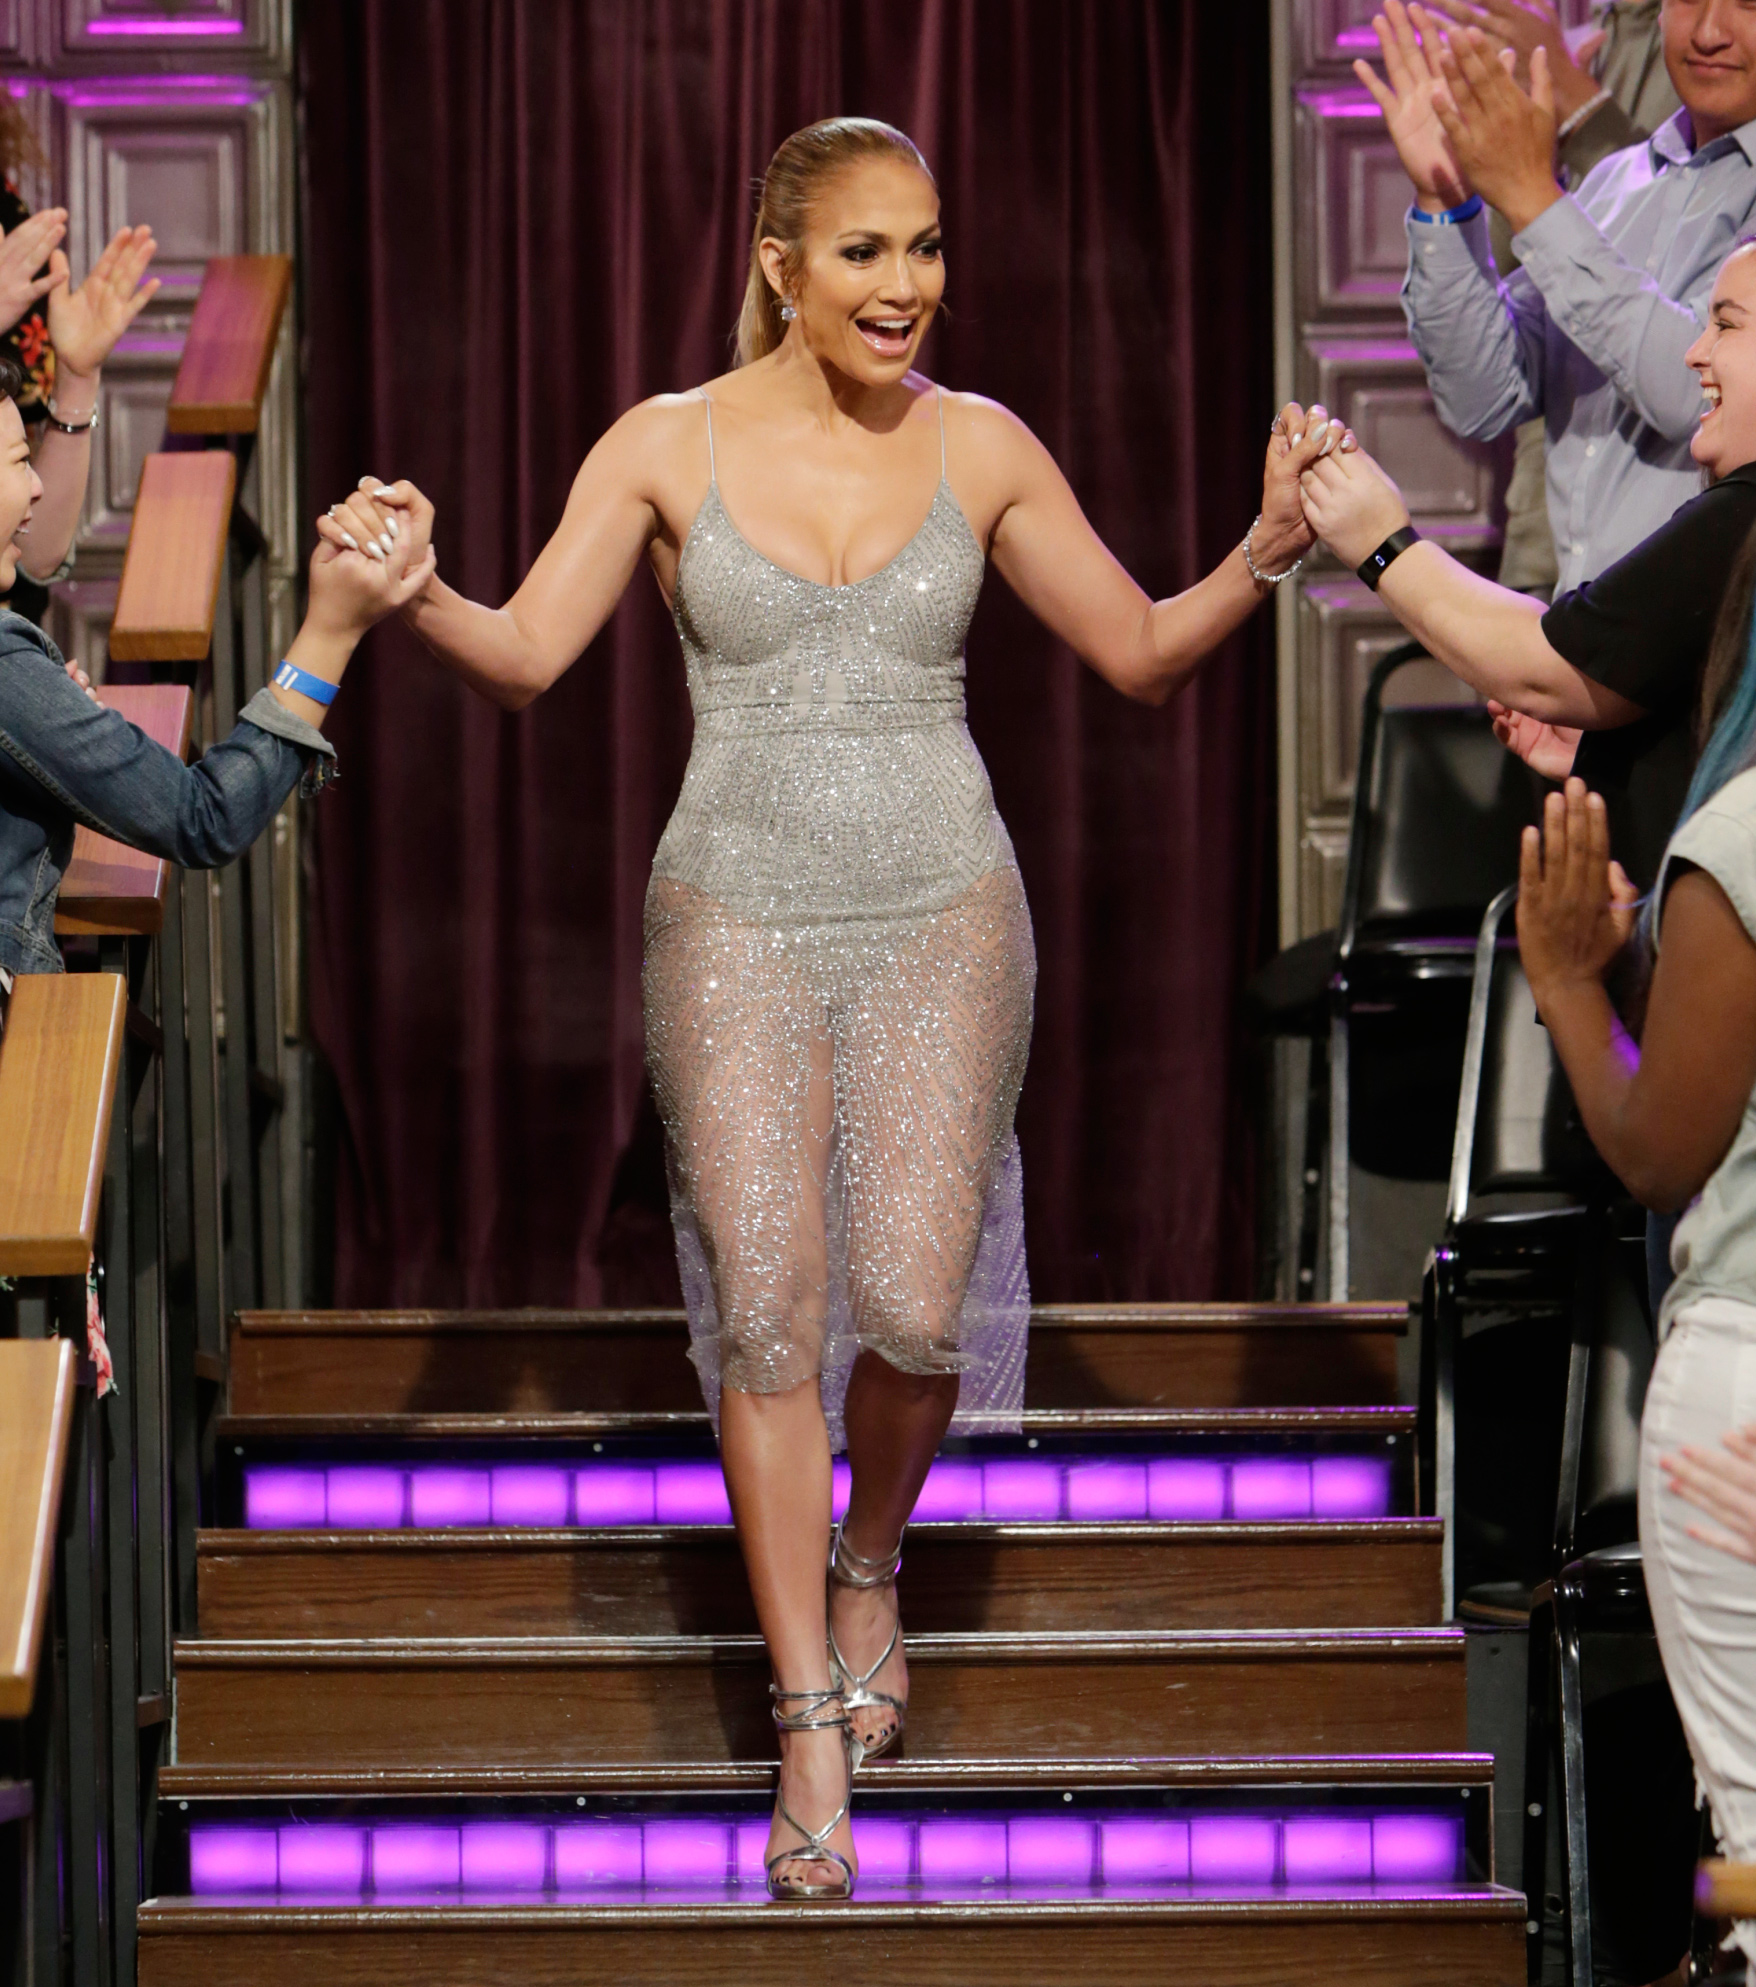 050917-jlo-going-out-look-lead